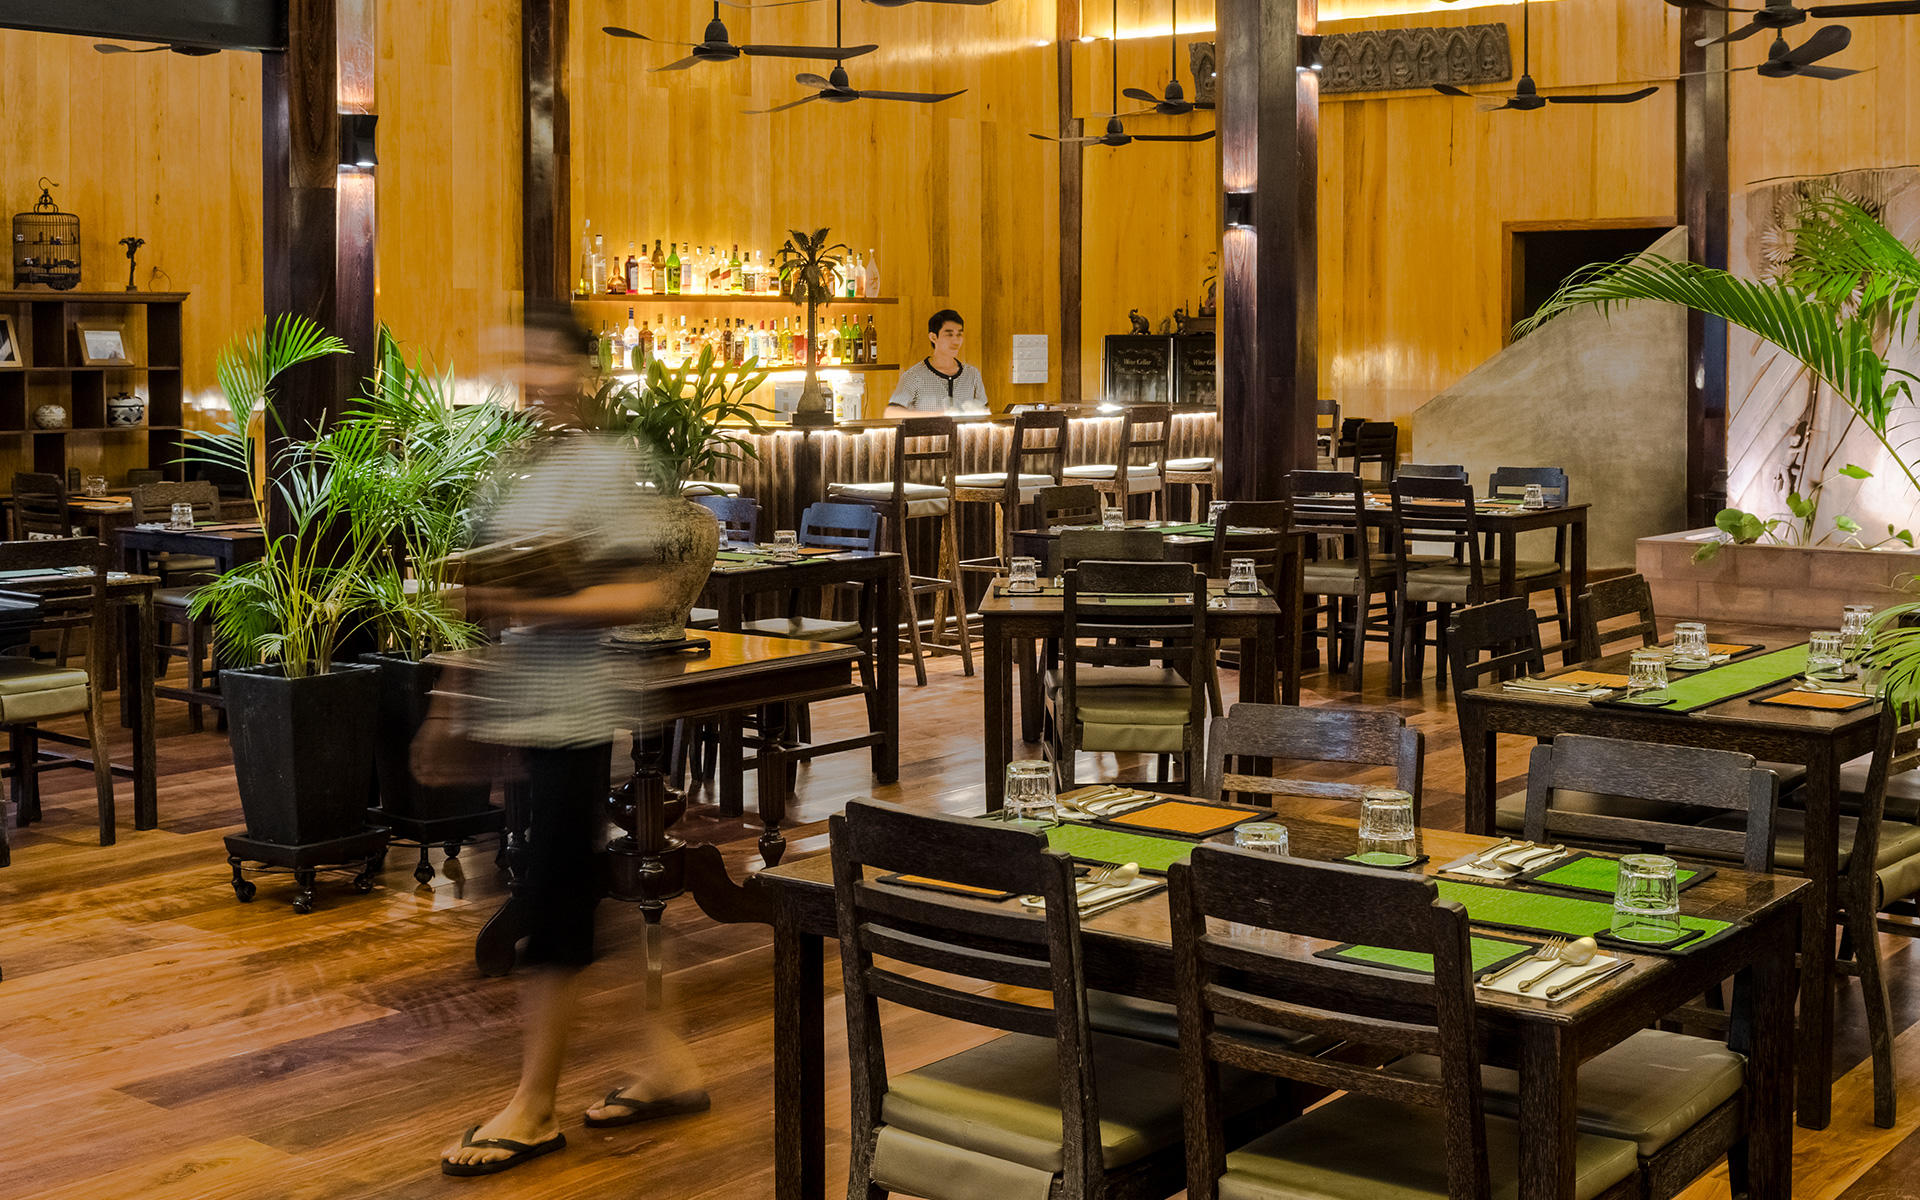 The Sugar Palm Restaurant & Bar, Siem Reap. Authentic Cambodian food by chef Kethana with locations in Phnom Penh & Siem Reap, Cambodia.